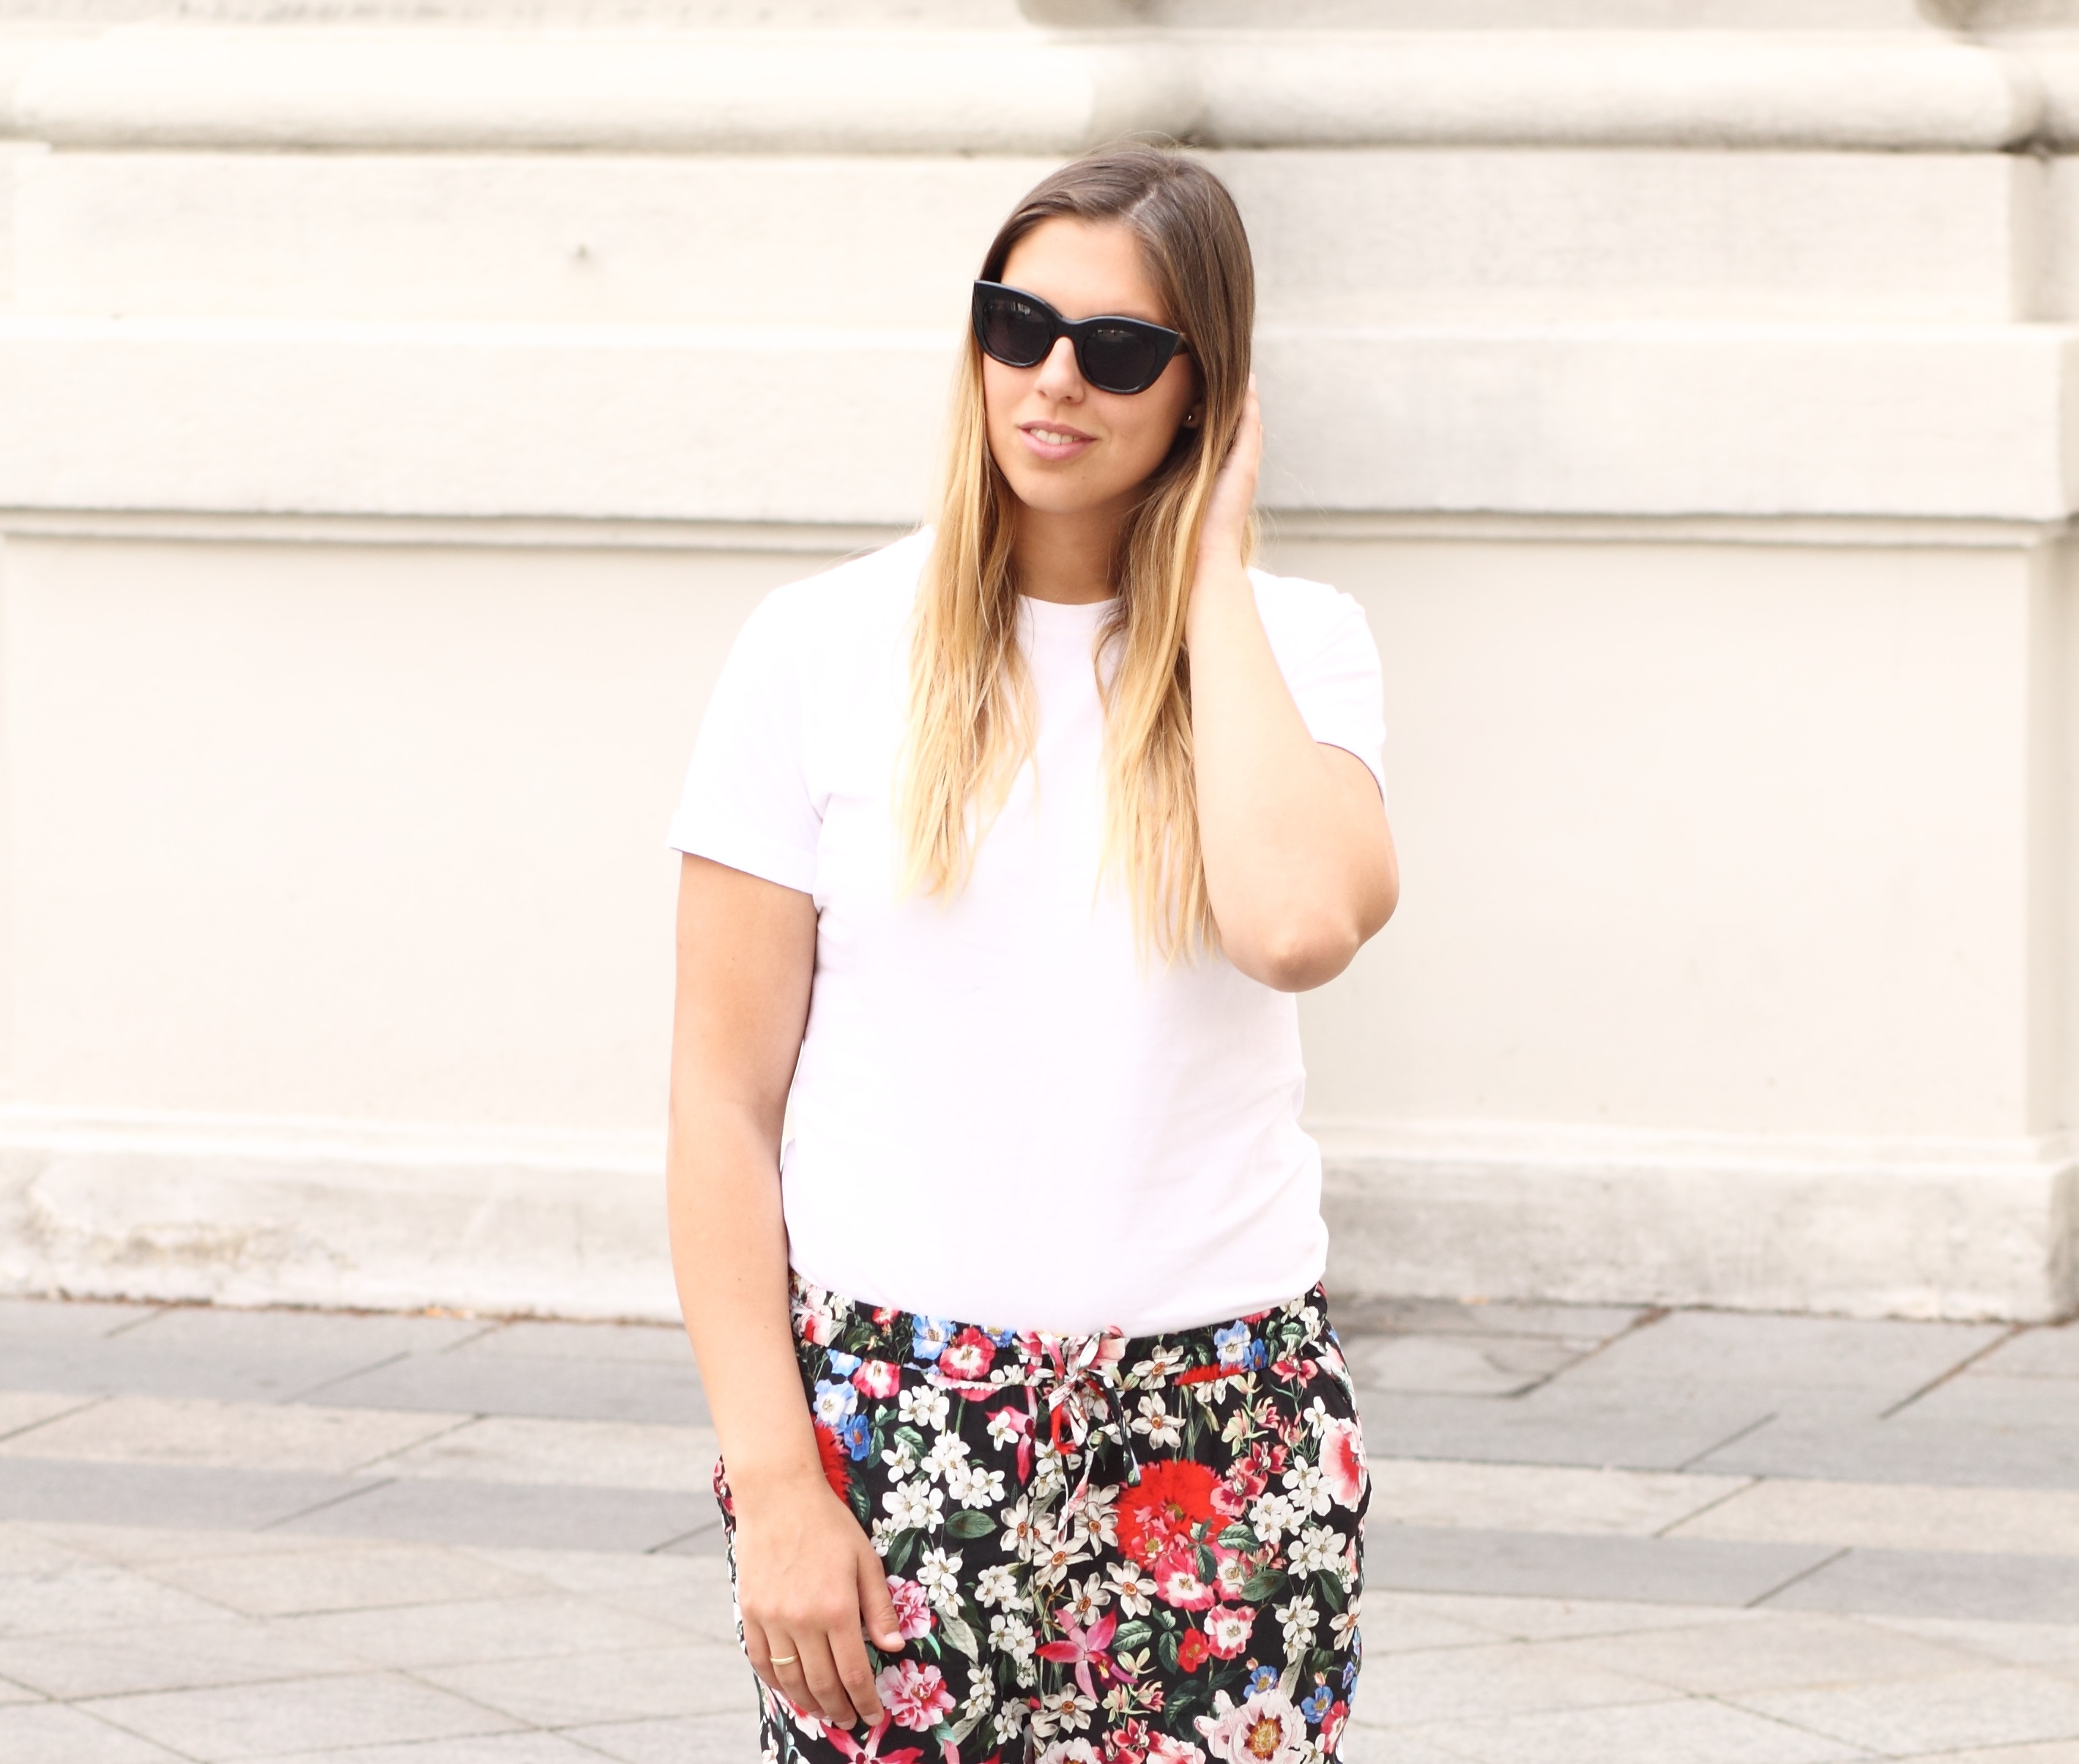 ZARA FLOWERPRINT PANTS AND BIKBOK SUNGLASSES